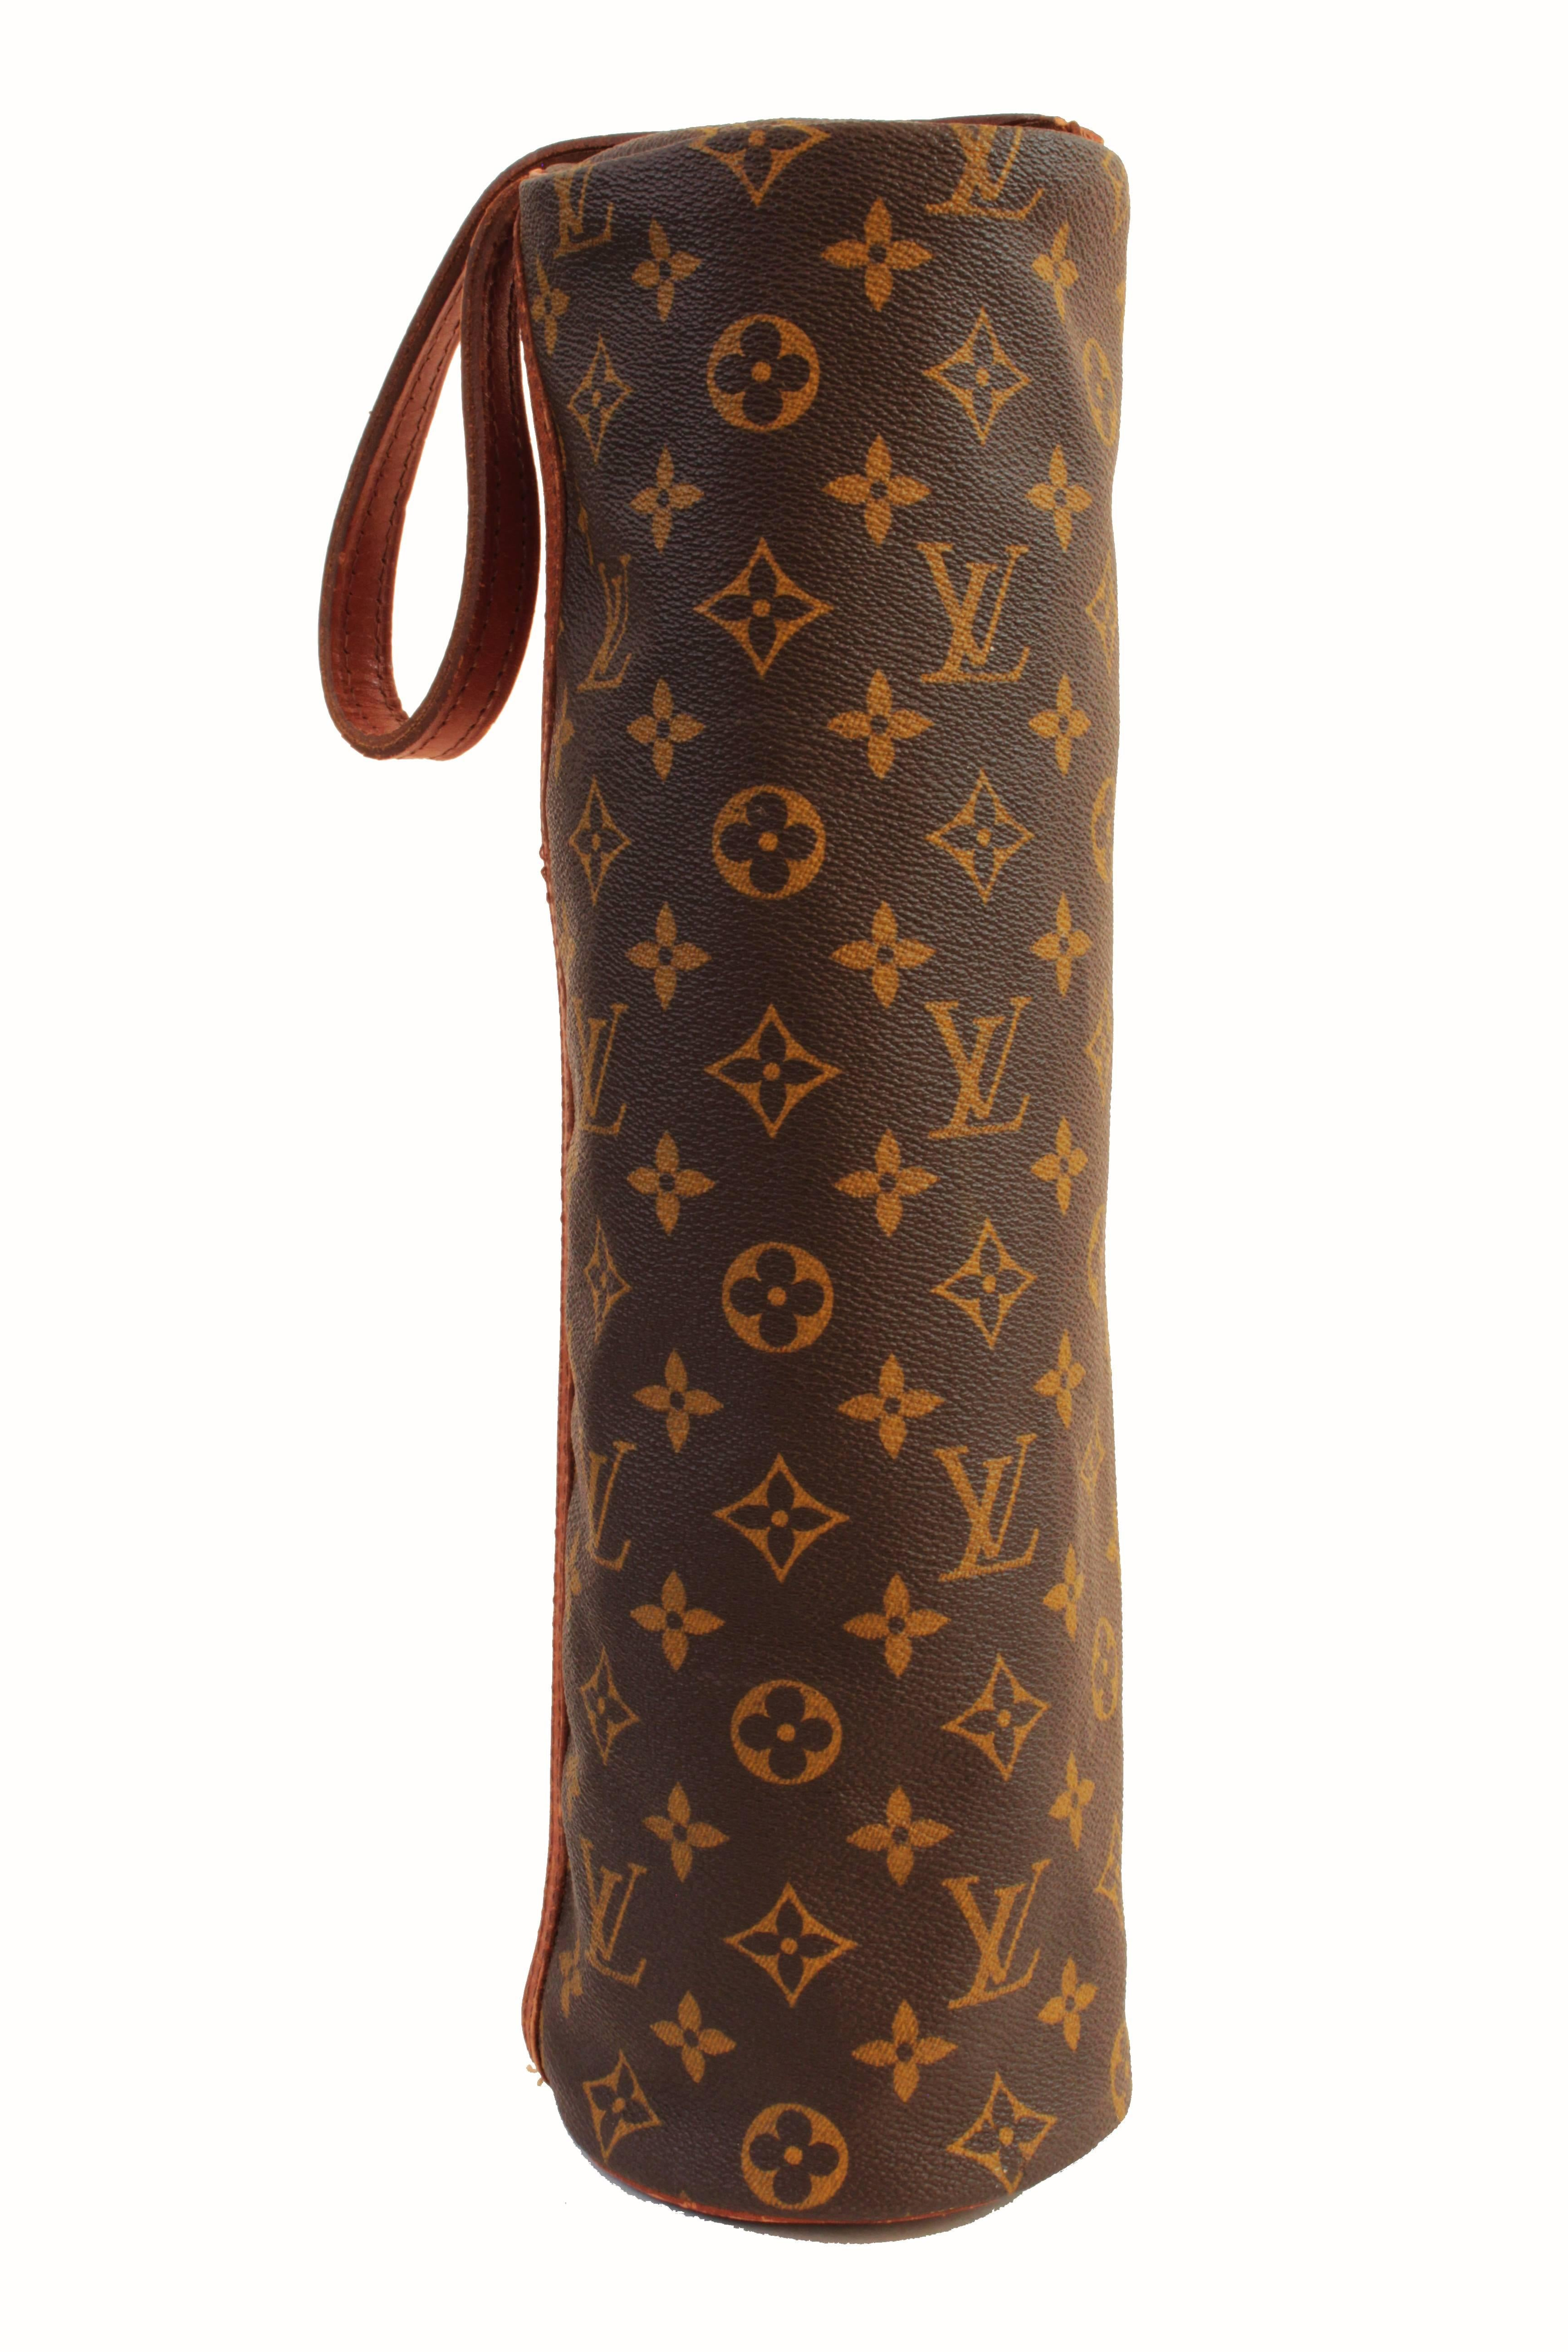 b39aae6c457d Vintage Louis Vuitton Monogram Tote with Thermos and Cup Picnic Travel  Barware 70s at 1stdibs